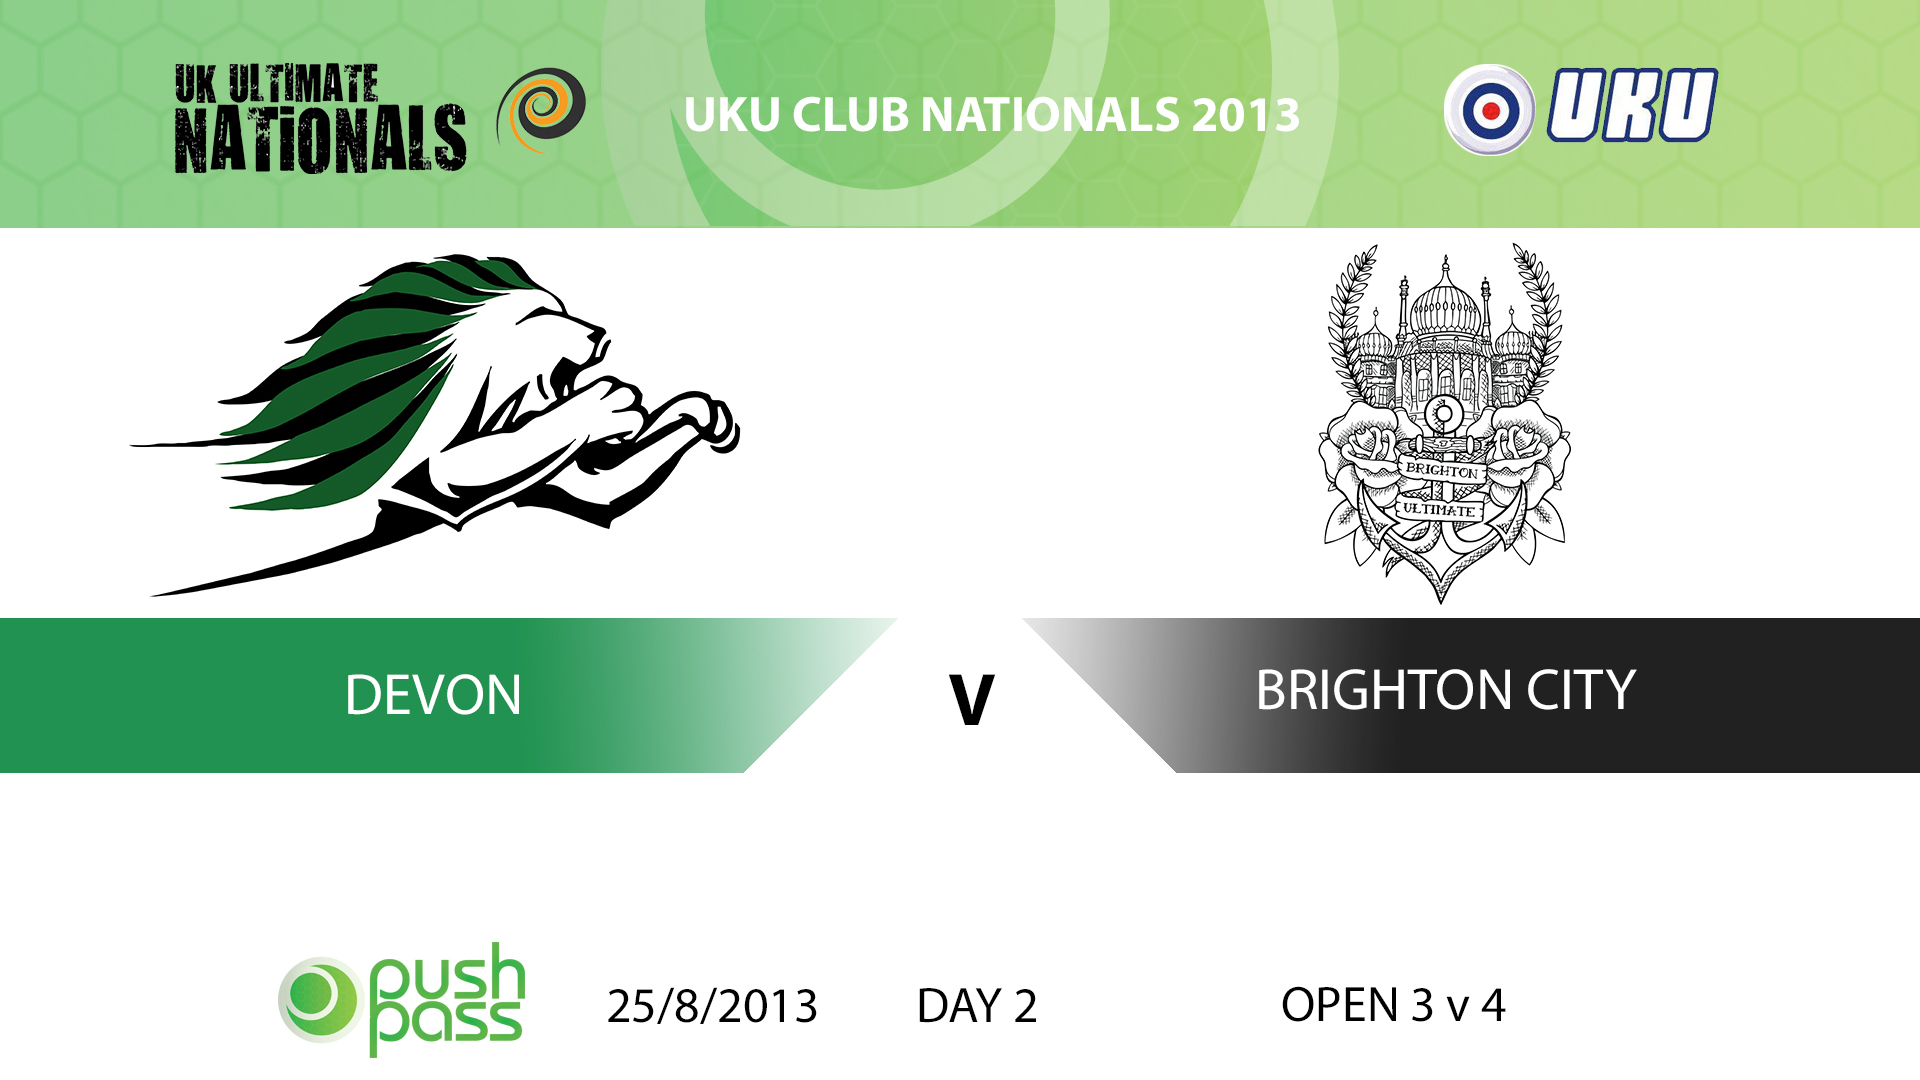 UKU Club Nationals 2013: Devon v Brighton City